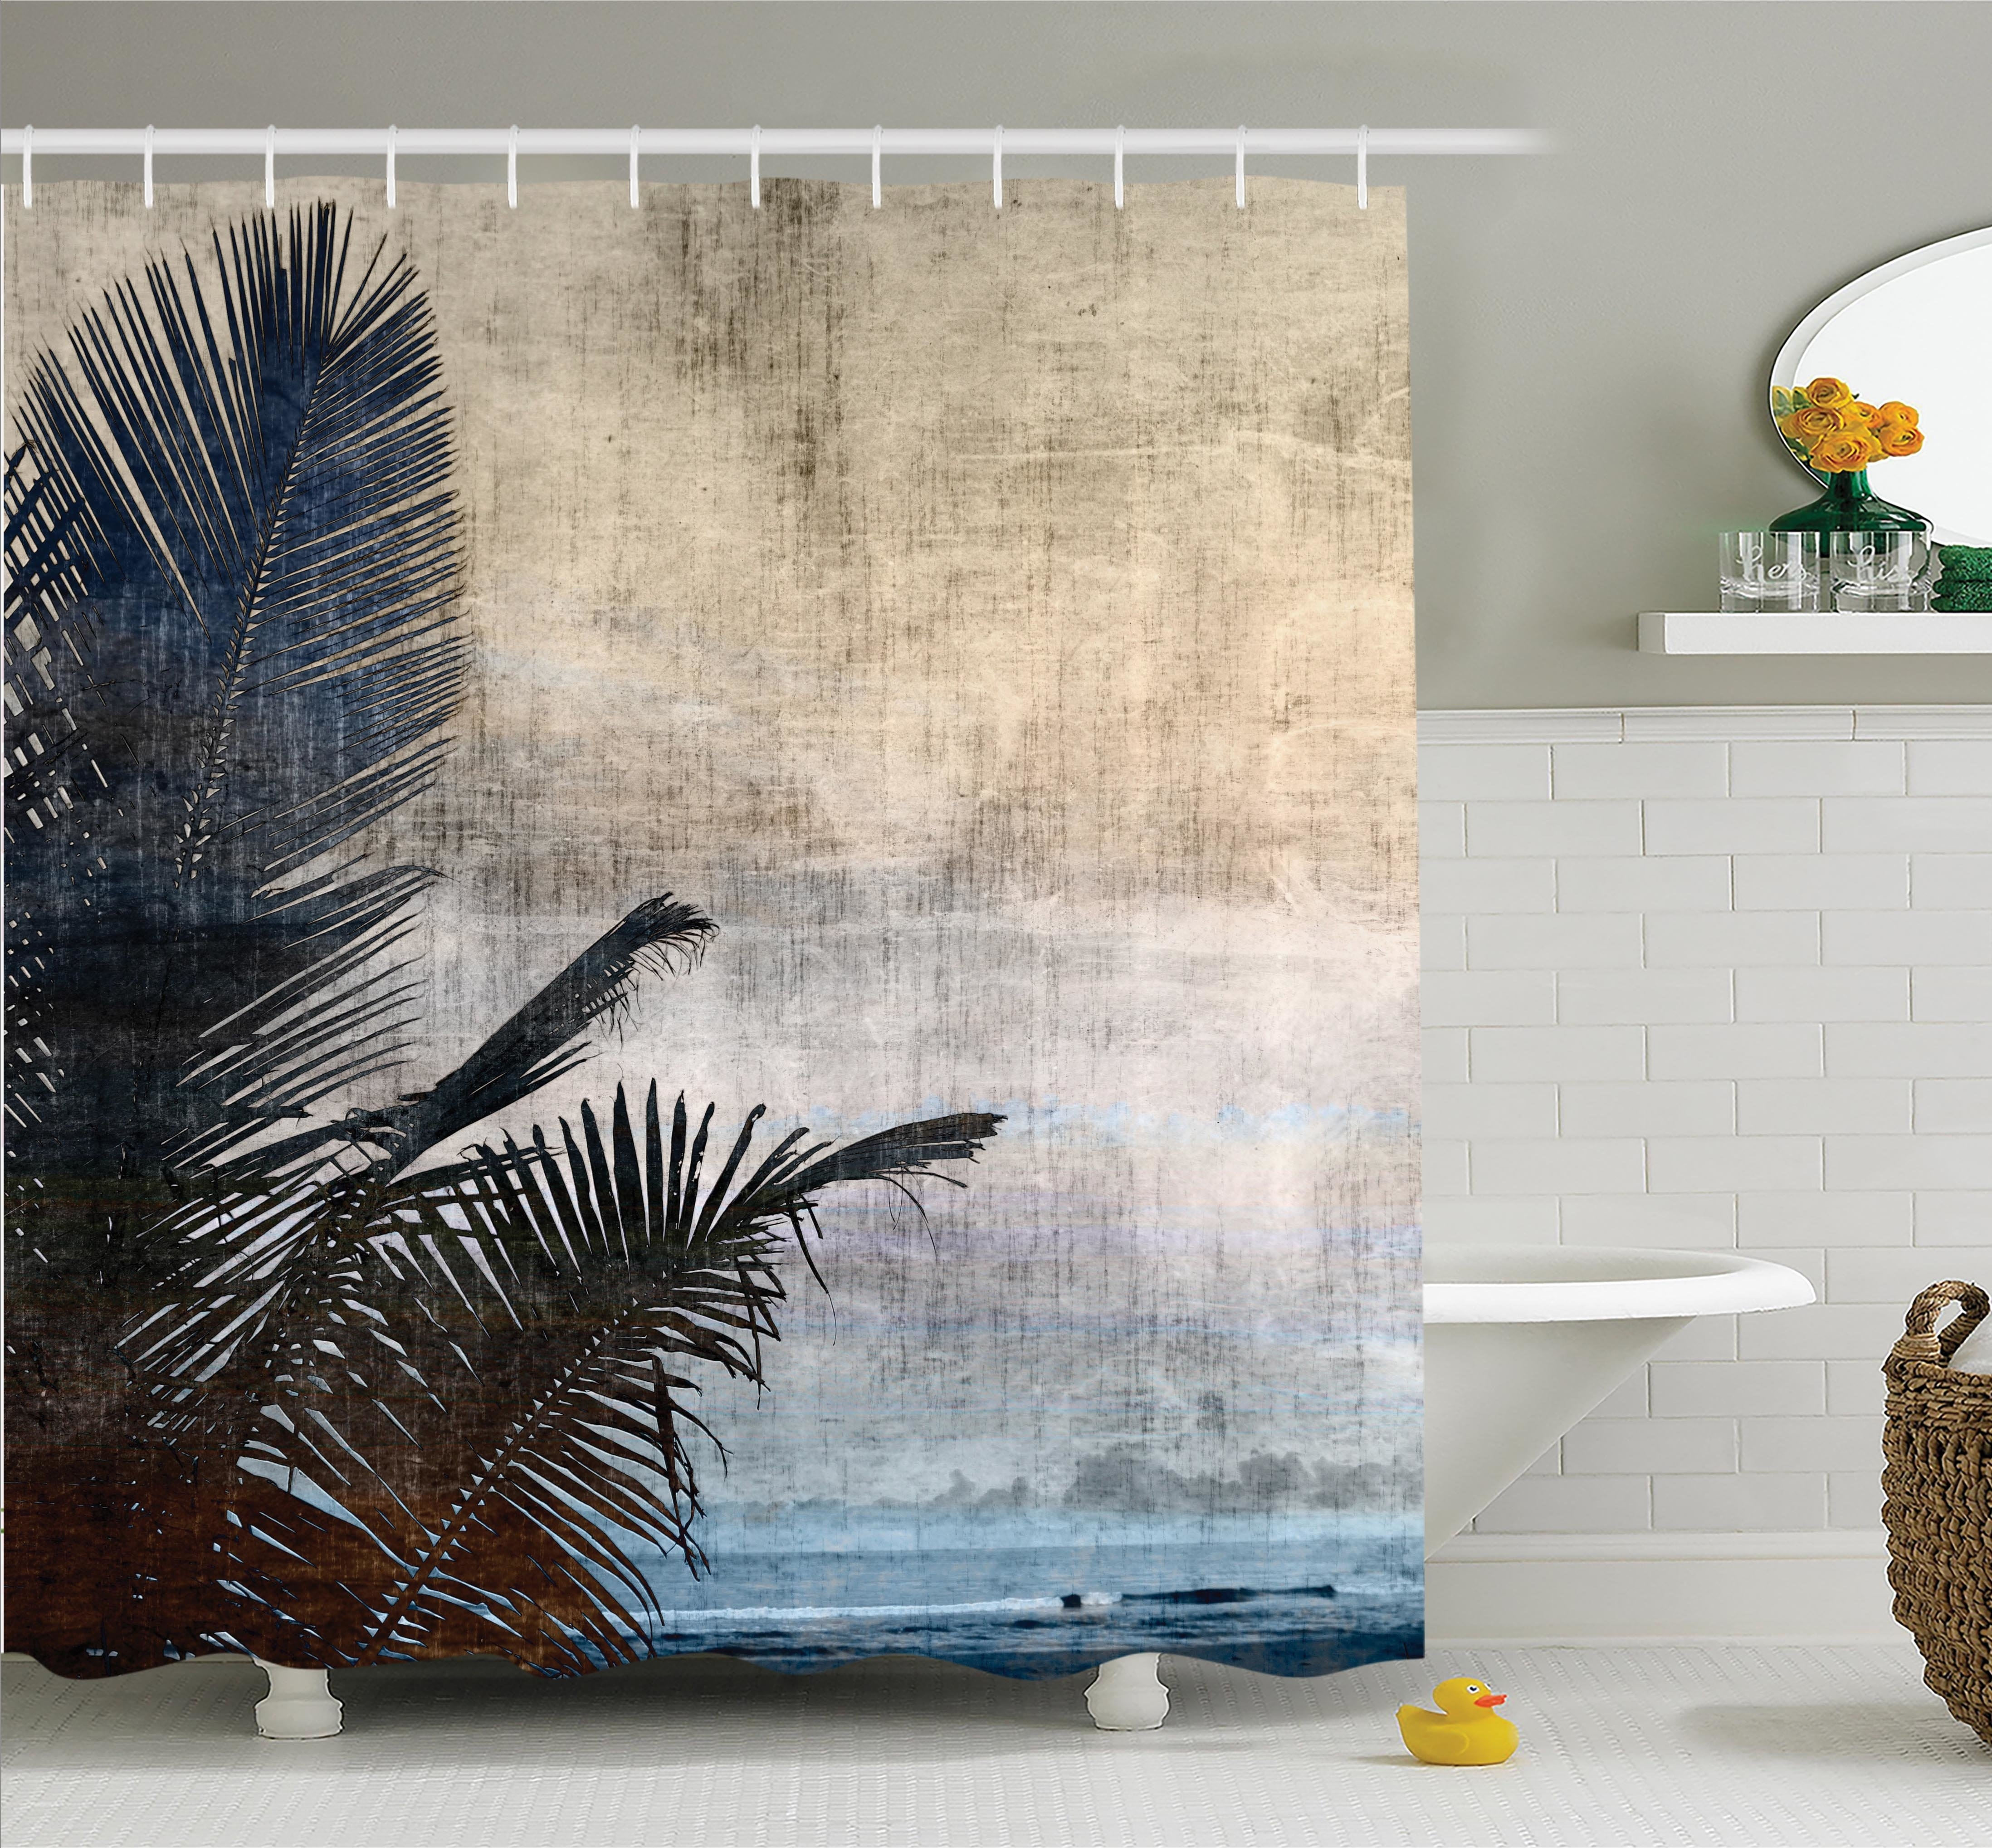 Ambesonne Tropical Grunge Palm Trees Art Shower Curtain Set intended for Shower Curtain Wall Art (Image 3 of 20)